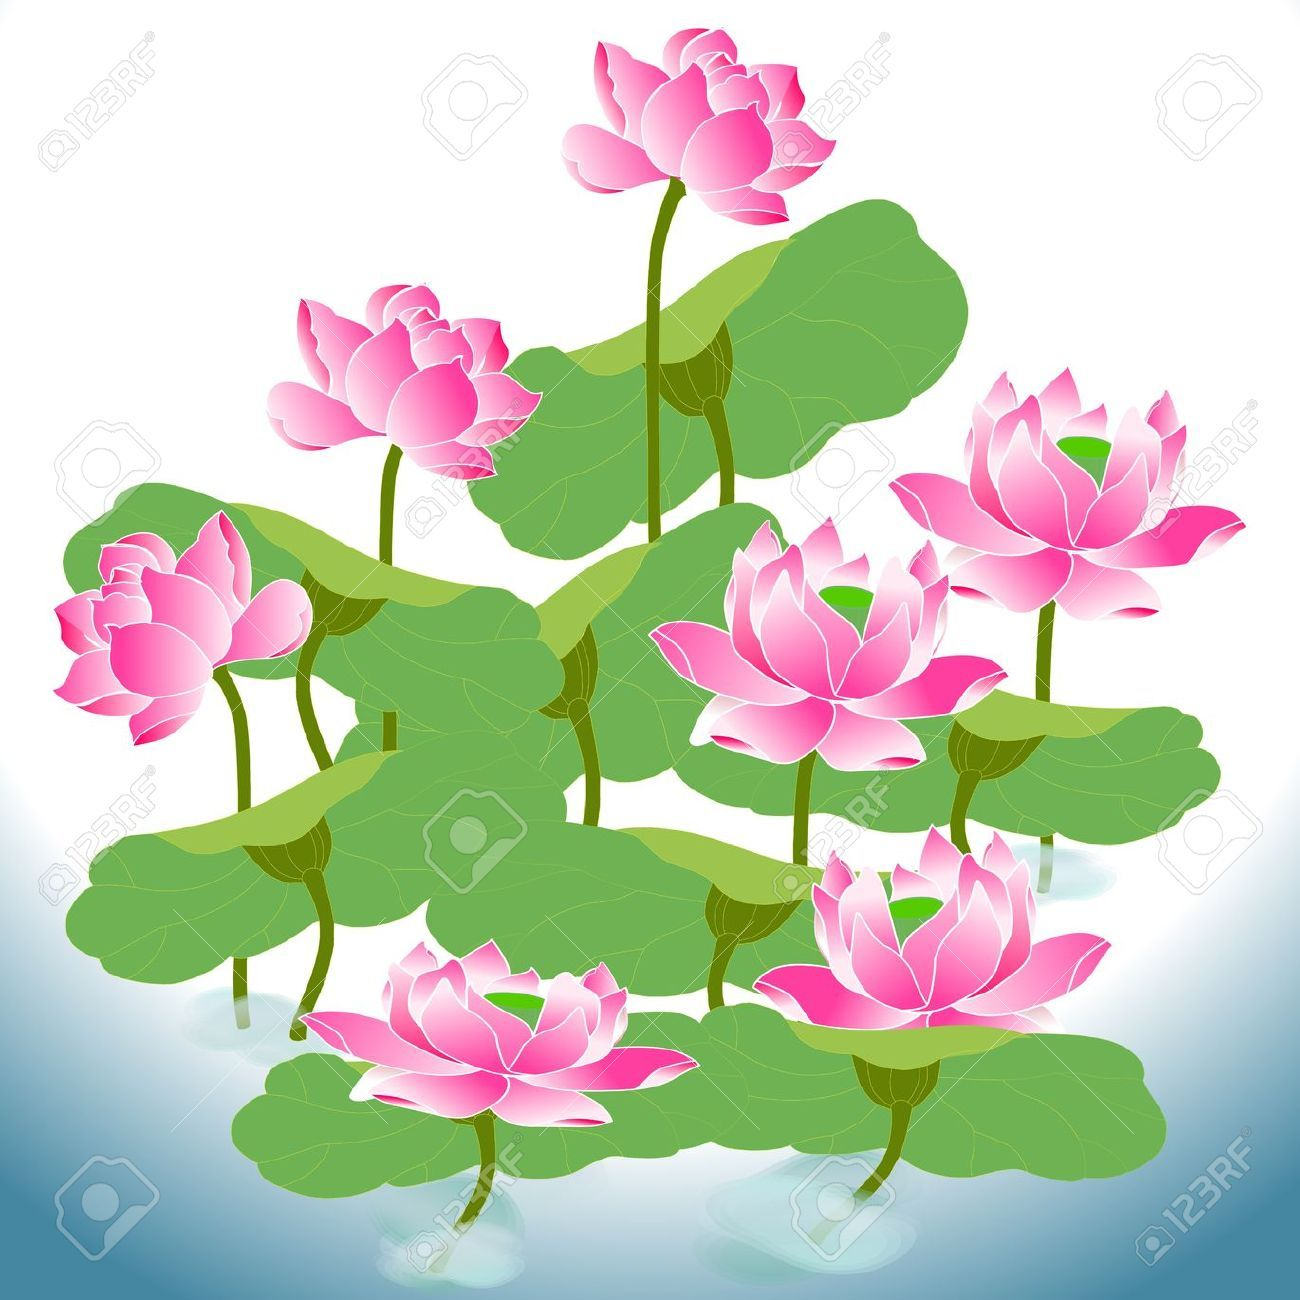 14 Awesome Green Lotus Flower Clipart Images Flowers 3 Pinterest